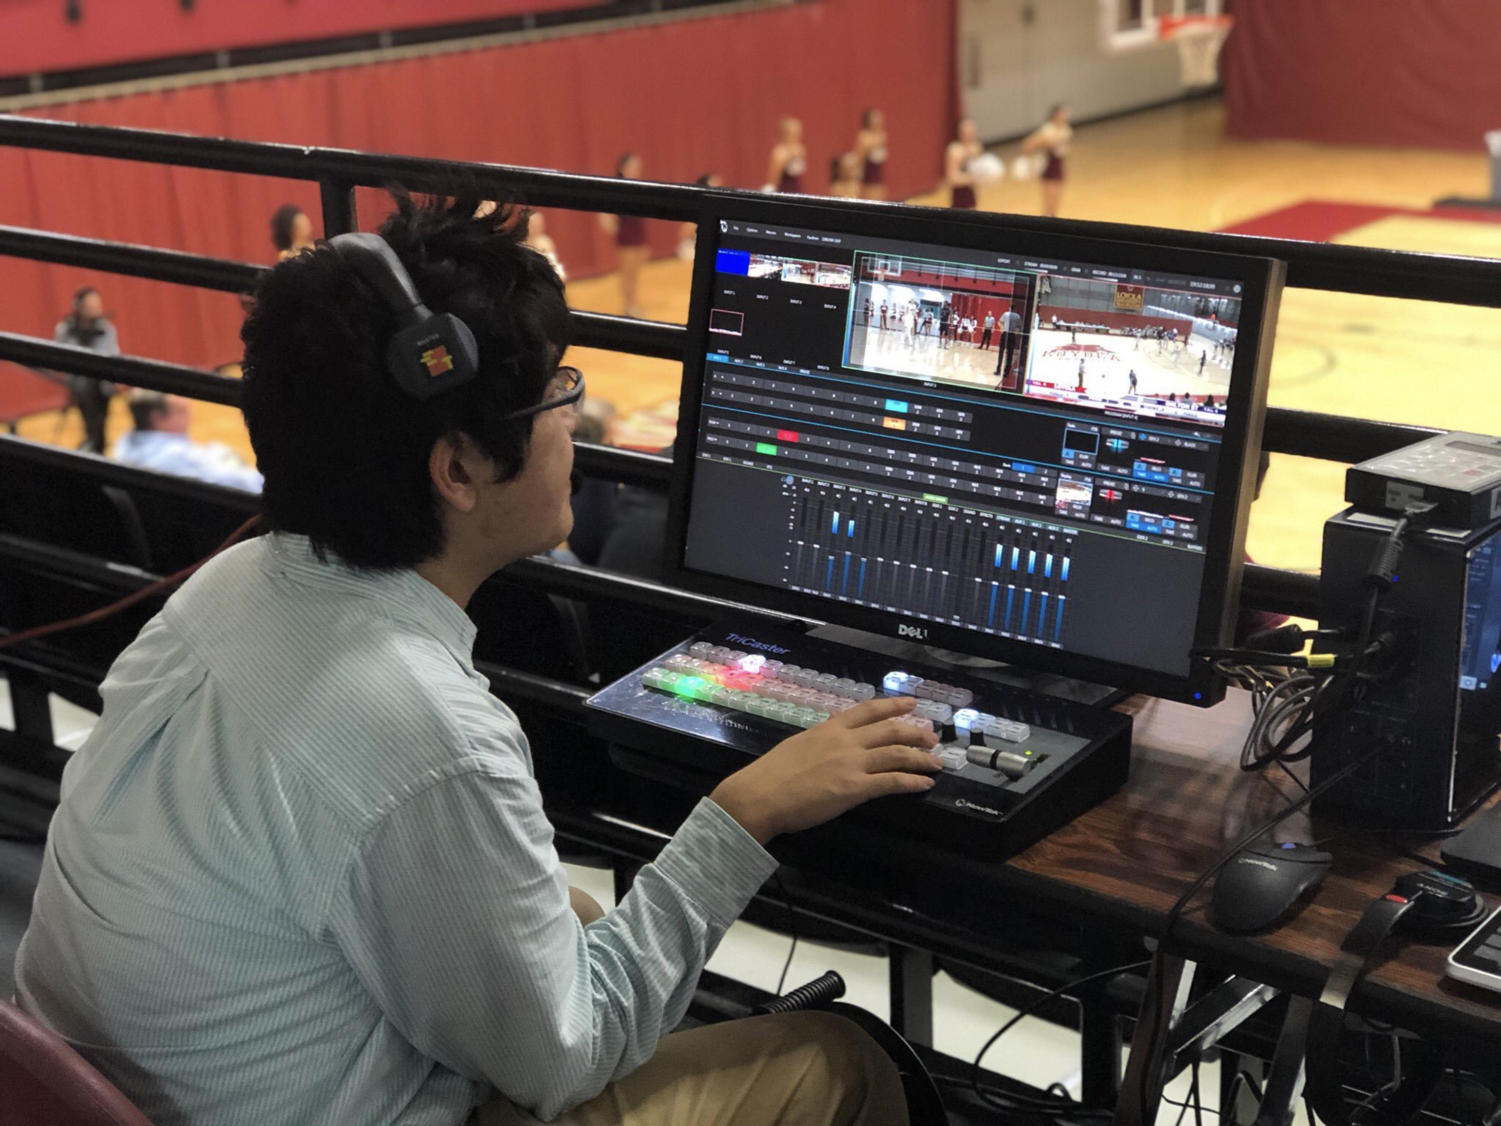 Mass communication senior Yuri Oguma operates the switcher in The Den during a live broadcast of a basketball game. Photo credit: Albert Dupont